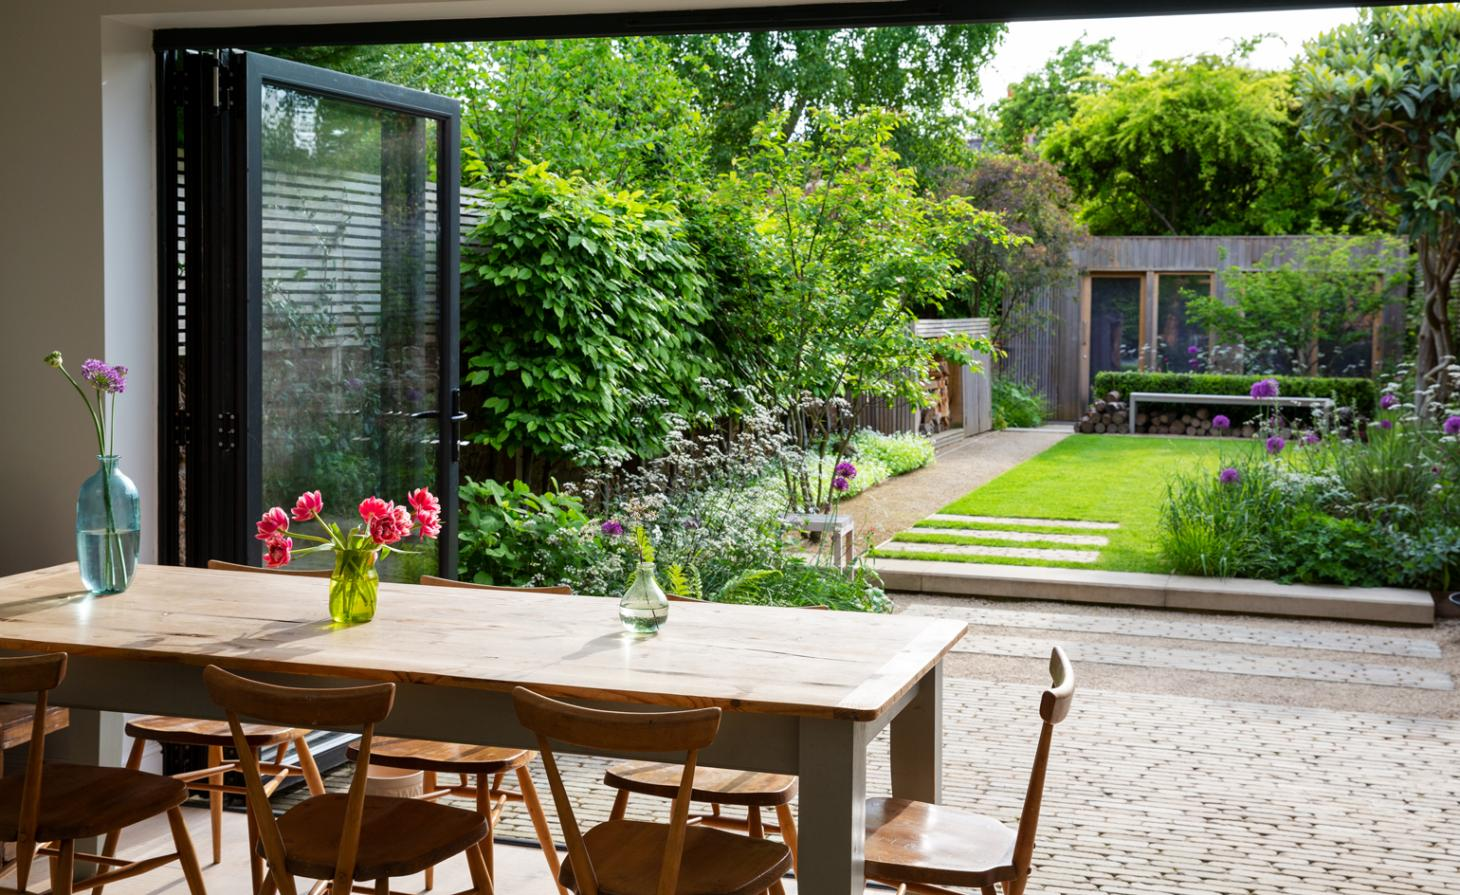 Small garden with seating area and wild flowers